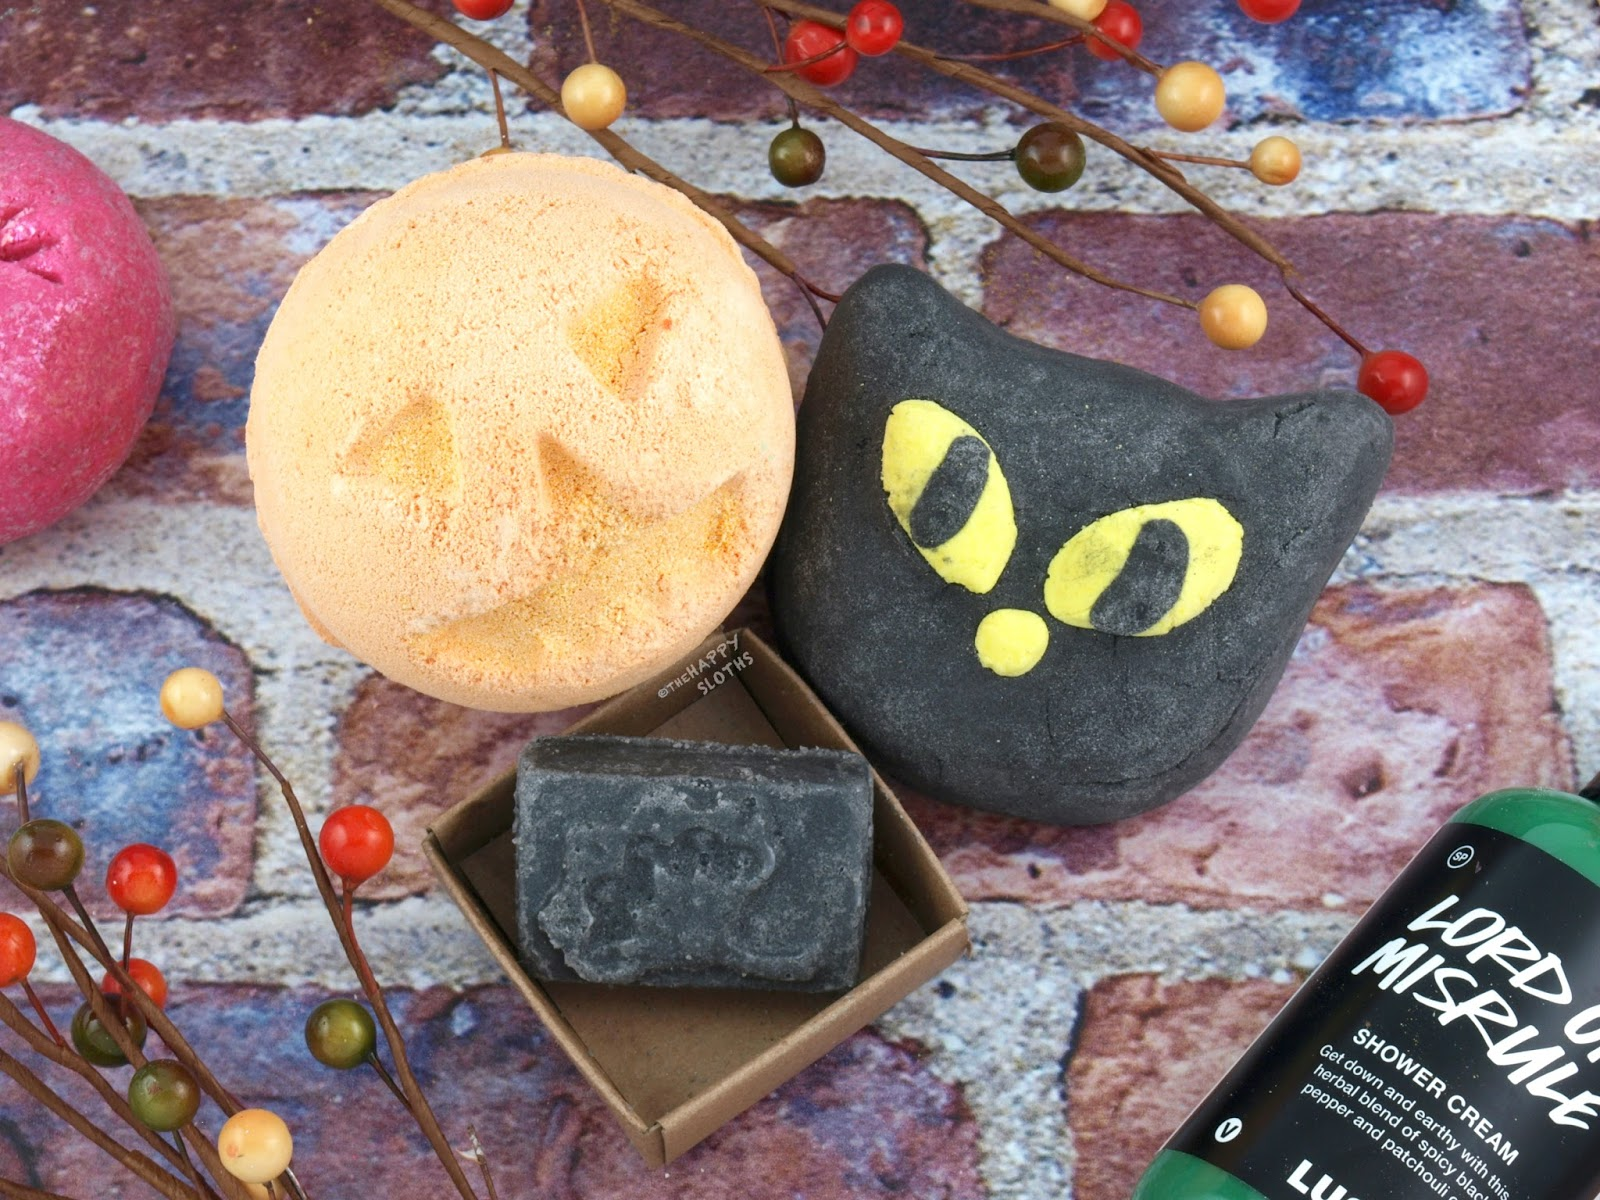 Lush Halloween 2017 Gift Guide: Pumpkin Bath Bomb, Bewitched Bubble Bar & Black Rose Naked Lip Scrub